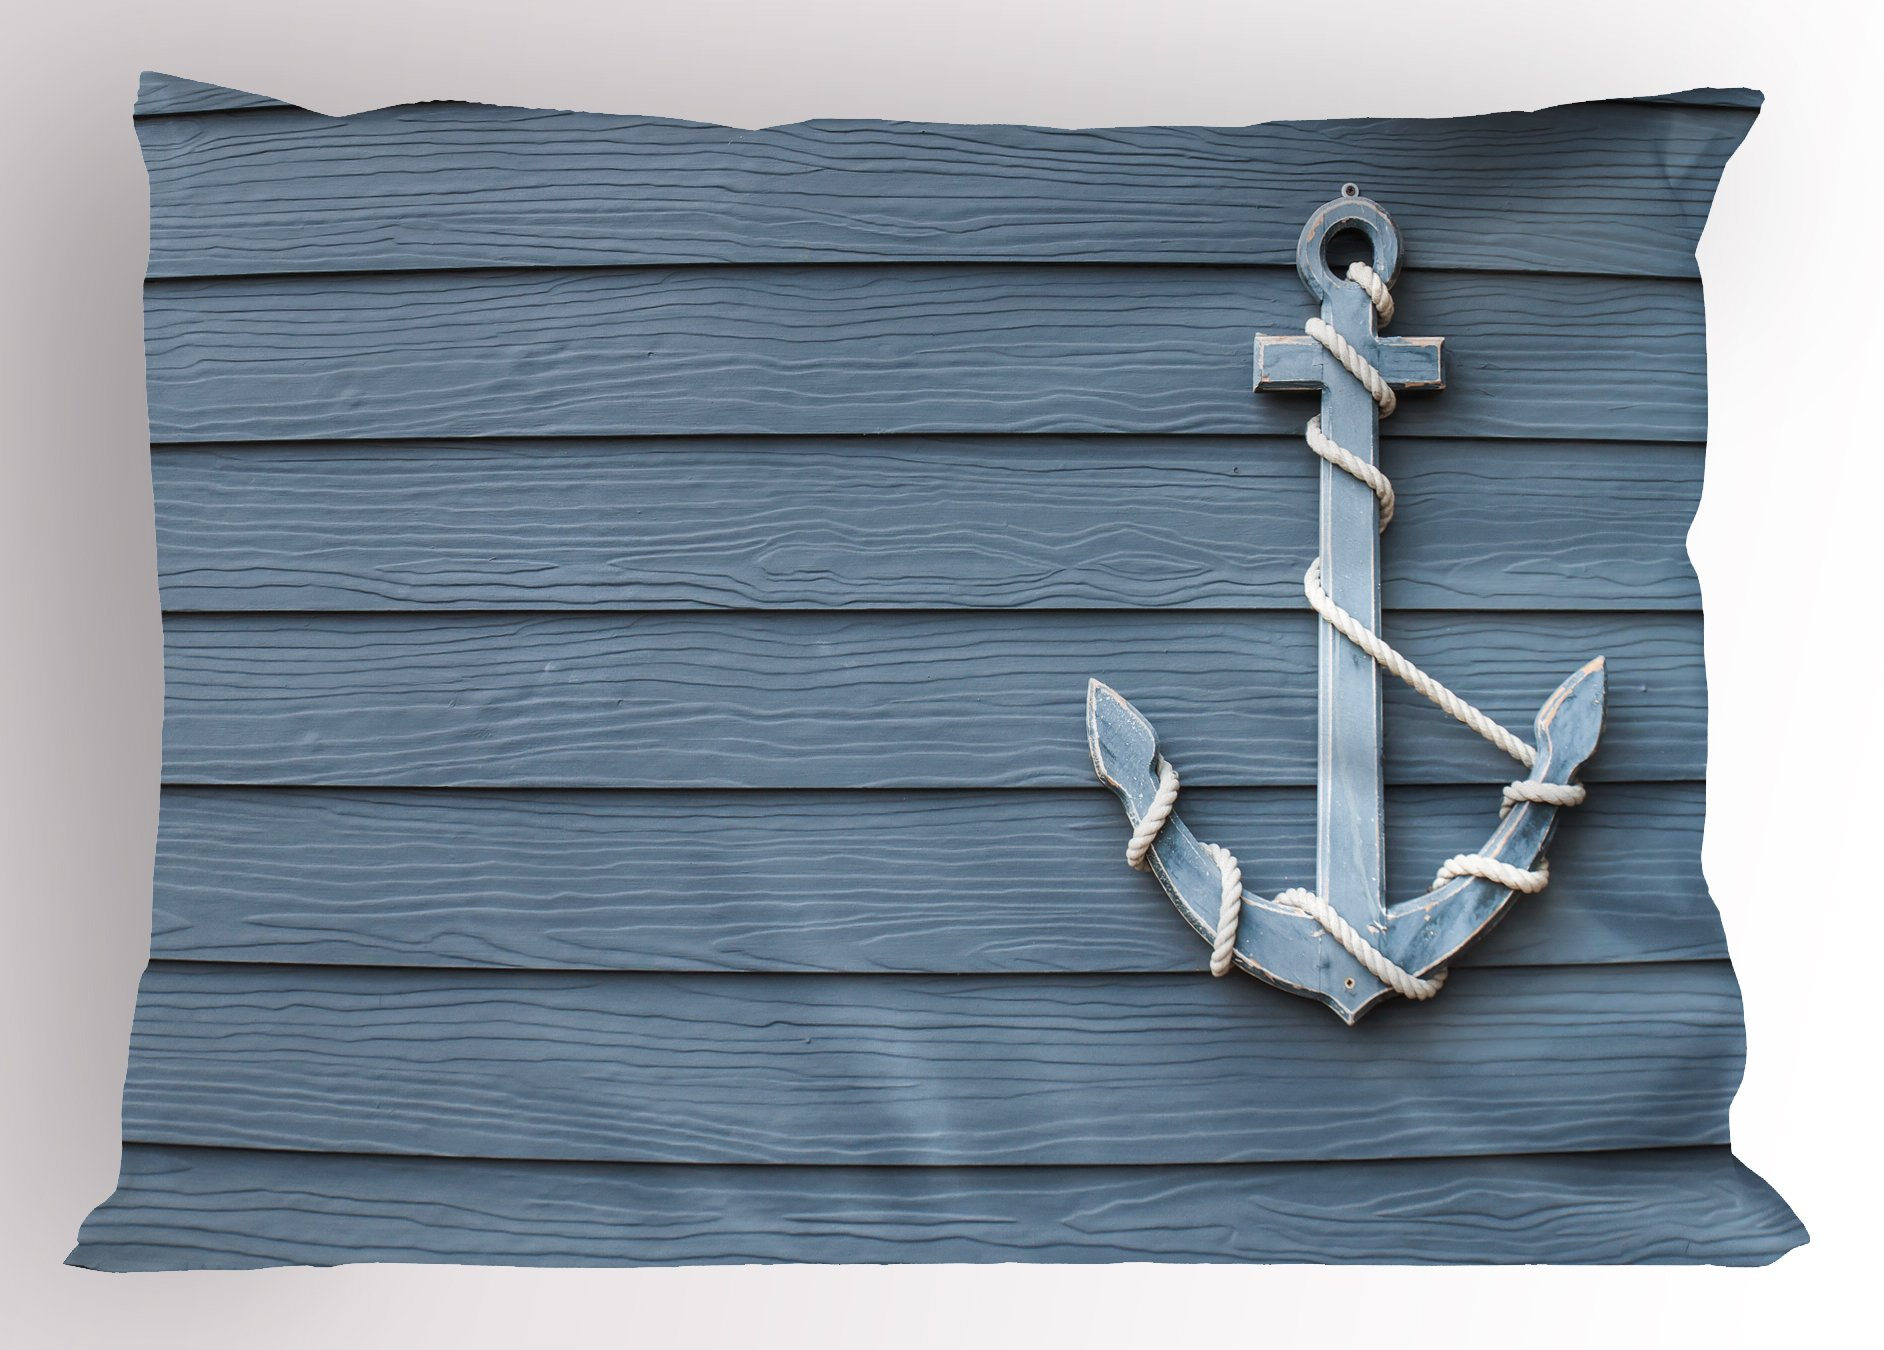 Ambesonne Nautical Decor Pillow Sham by, Anchor with Marine Rope on Wood Background Sea Ocean Life Coast Cruise Theme, Decorative Standard King Size Printed Pillowcase, 36 X 20 Inches, Blue Grey